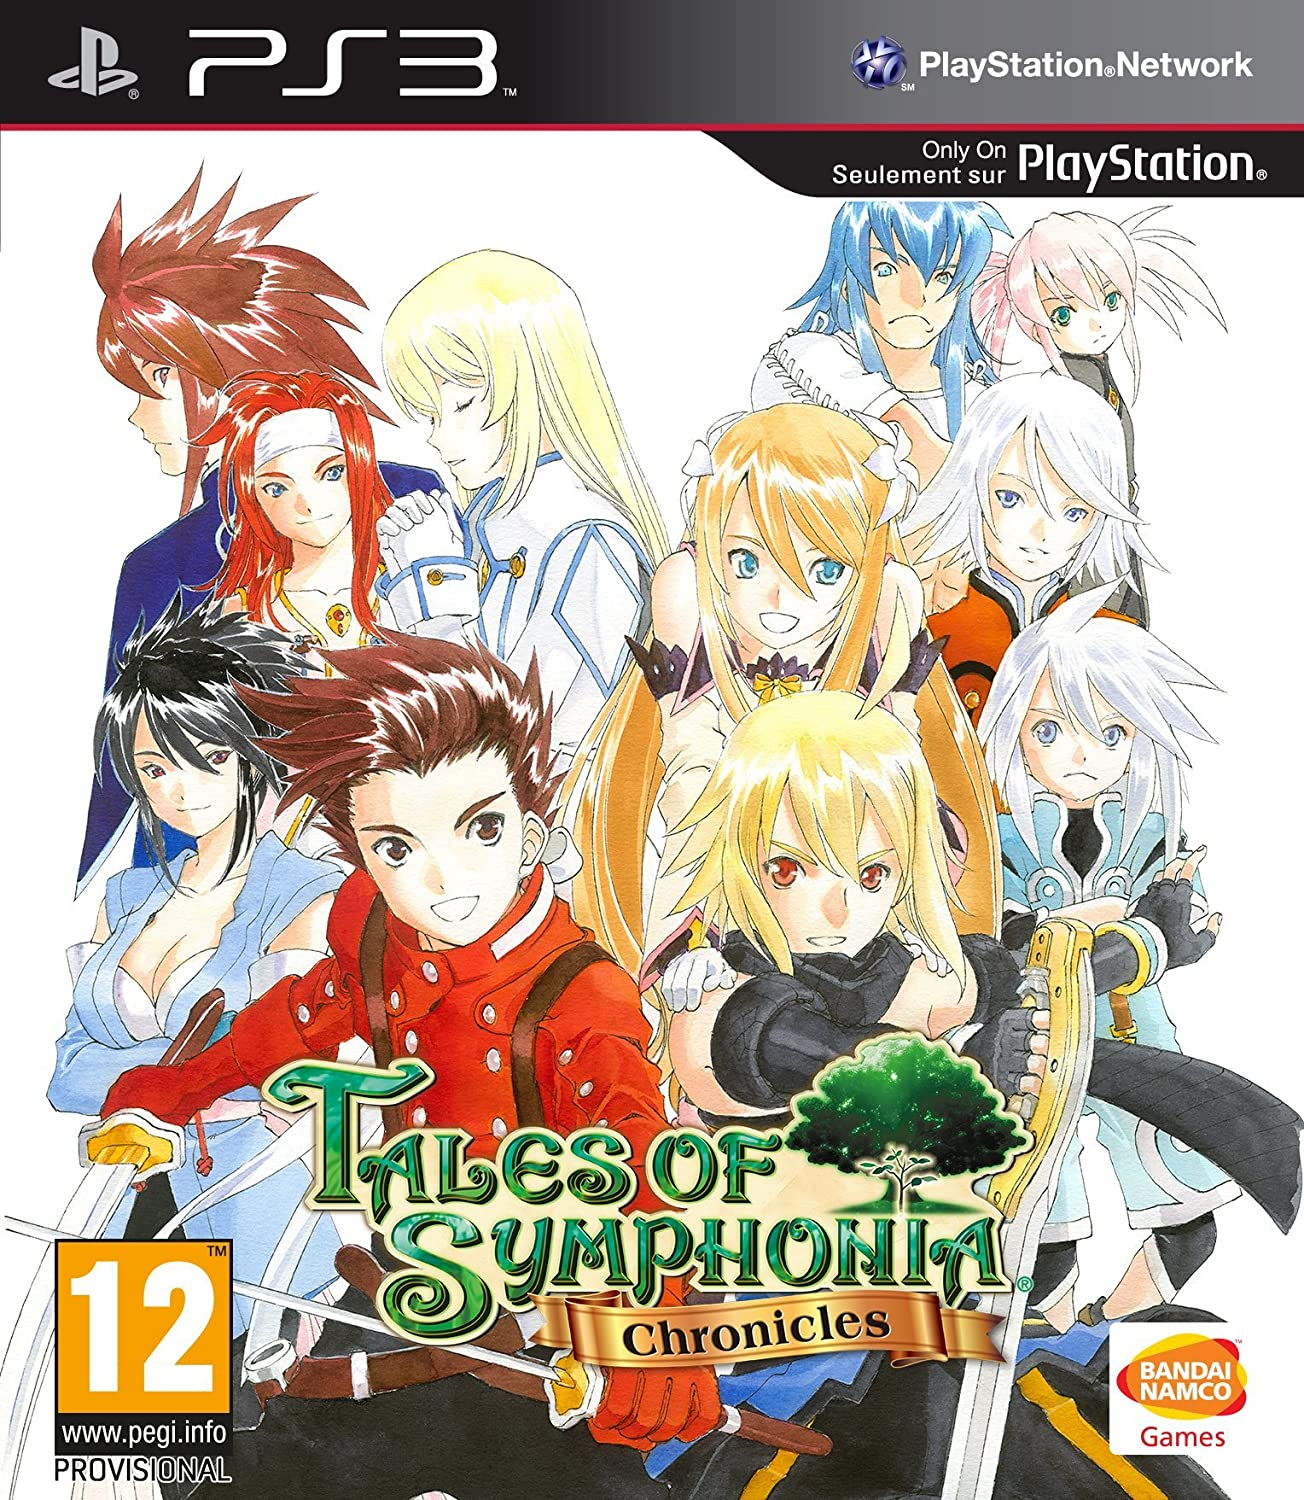 Tales Of In a popularity Symphonia ps3 Chronicles Ranking TOP18